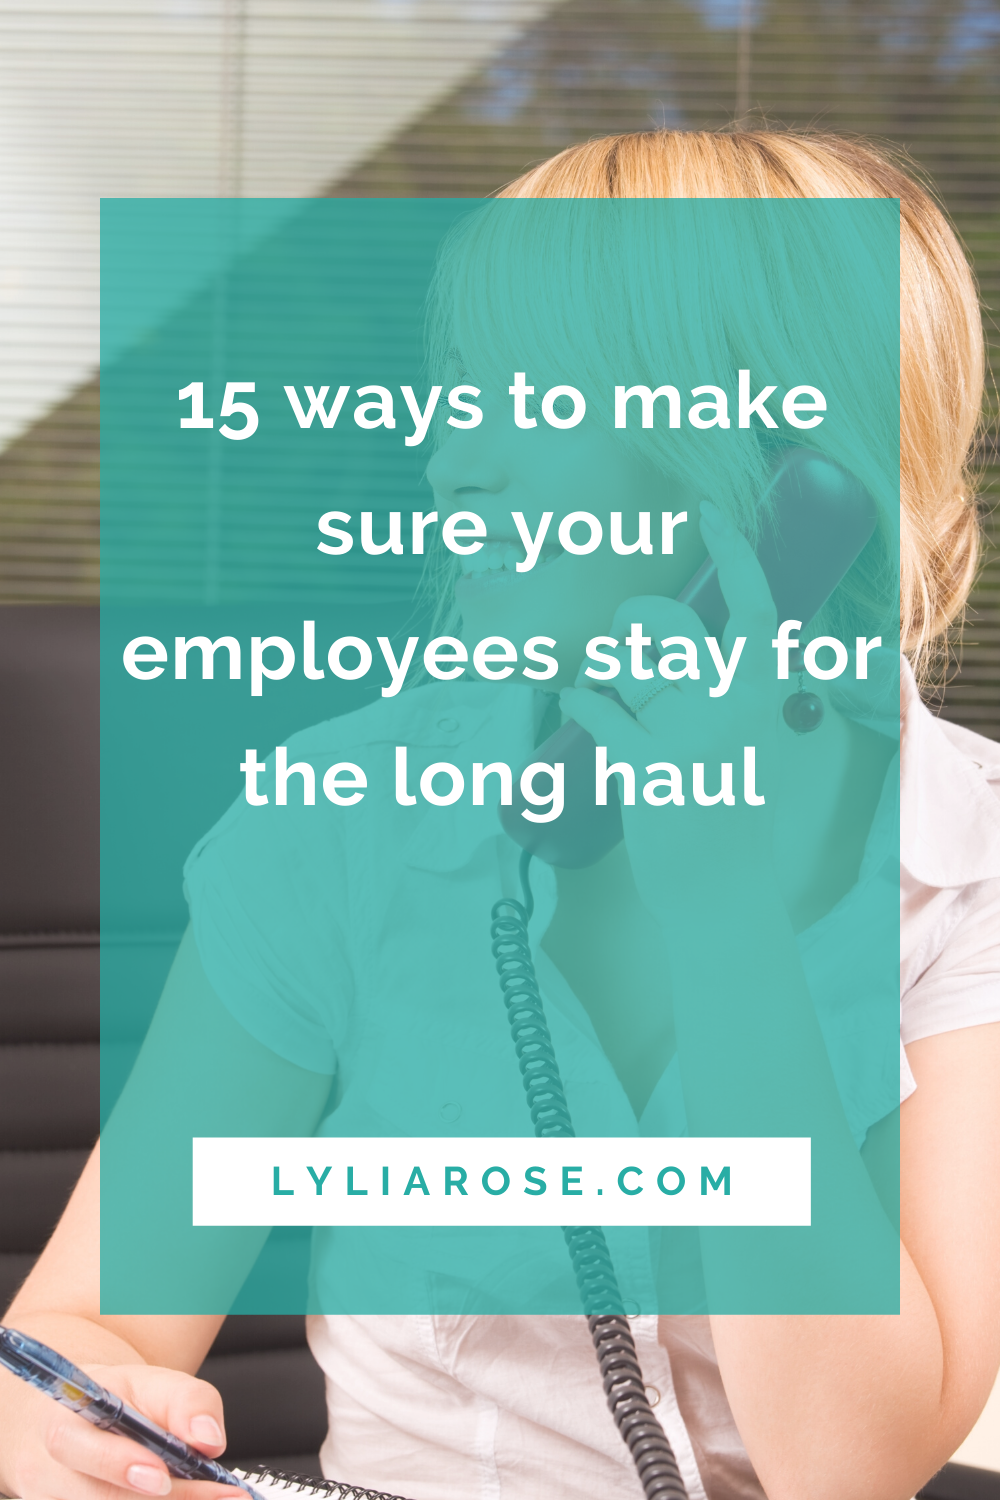 15 ways to make sure your employees stay for the long haul